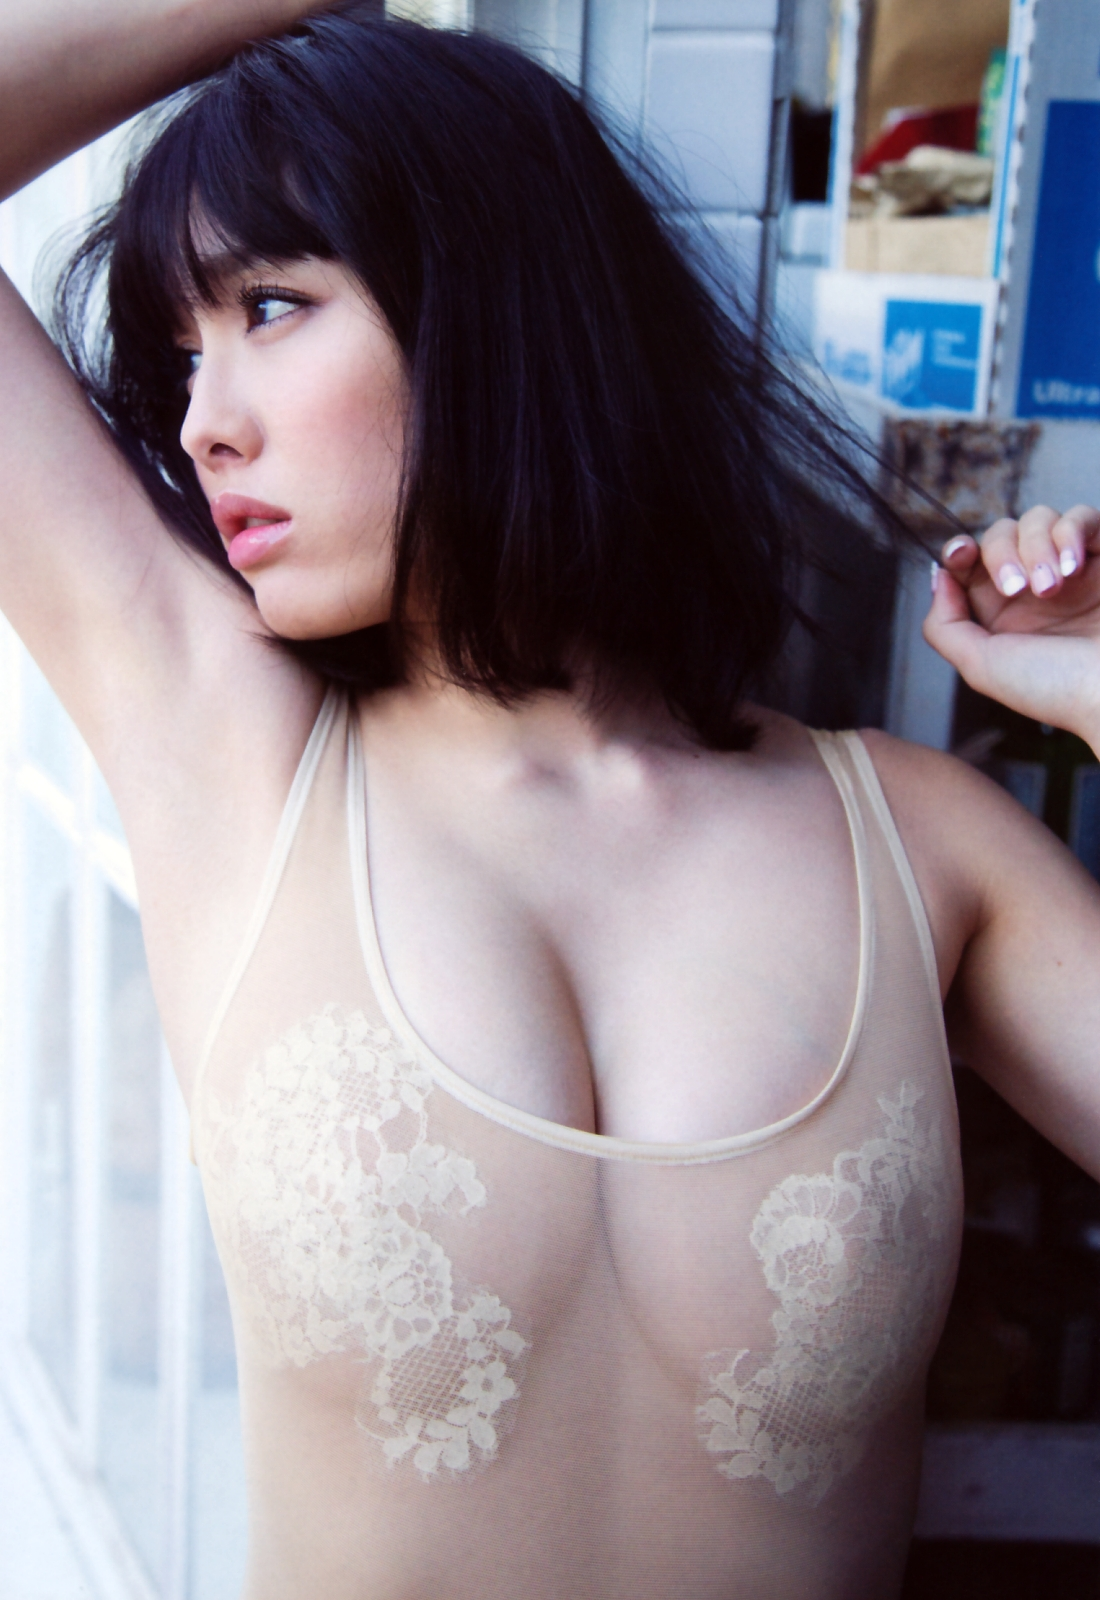 Its soft and makes you want to touch it Anna Konno 030